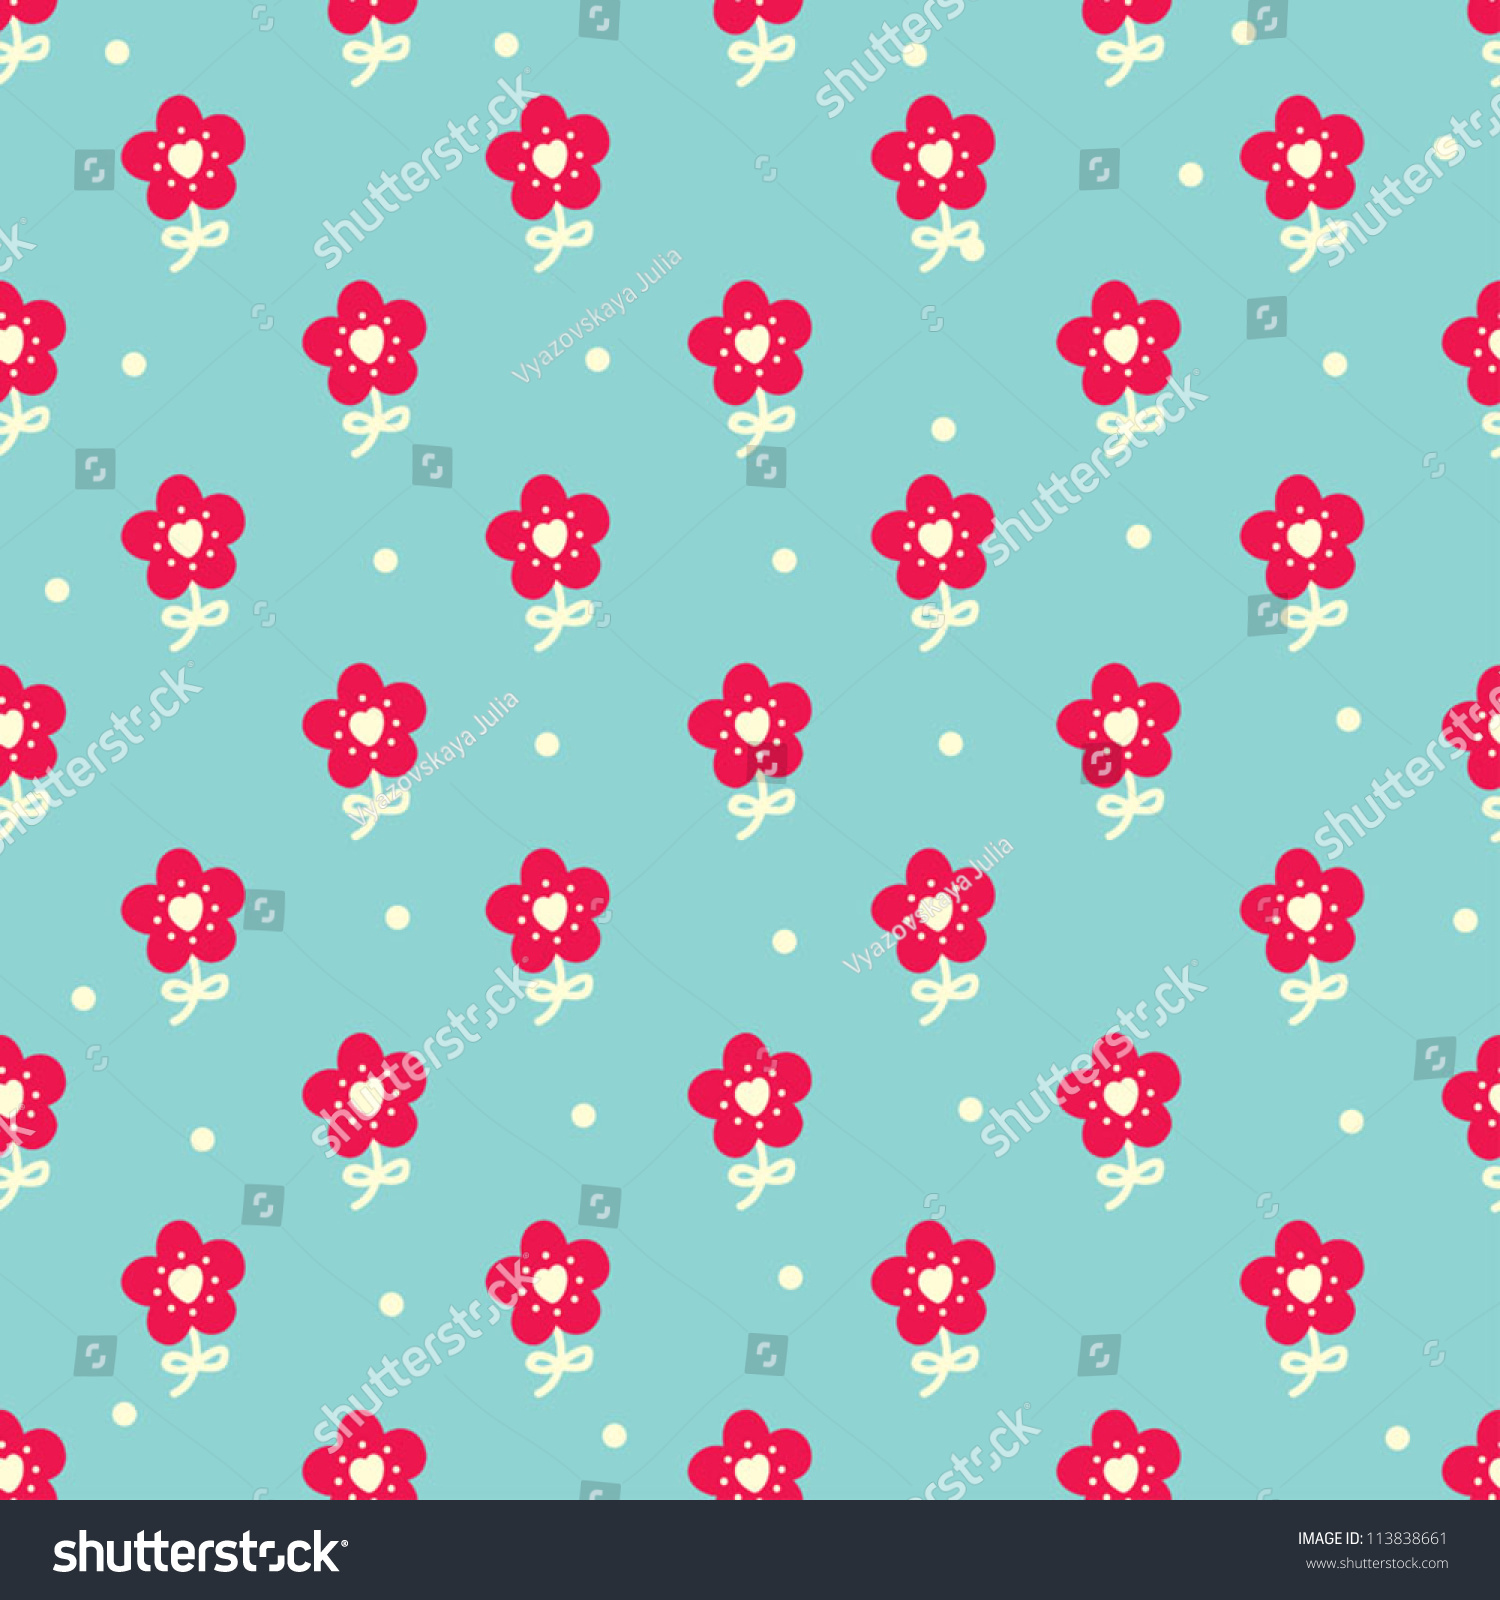 Cute flower backgrounds